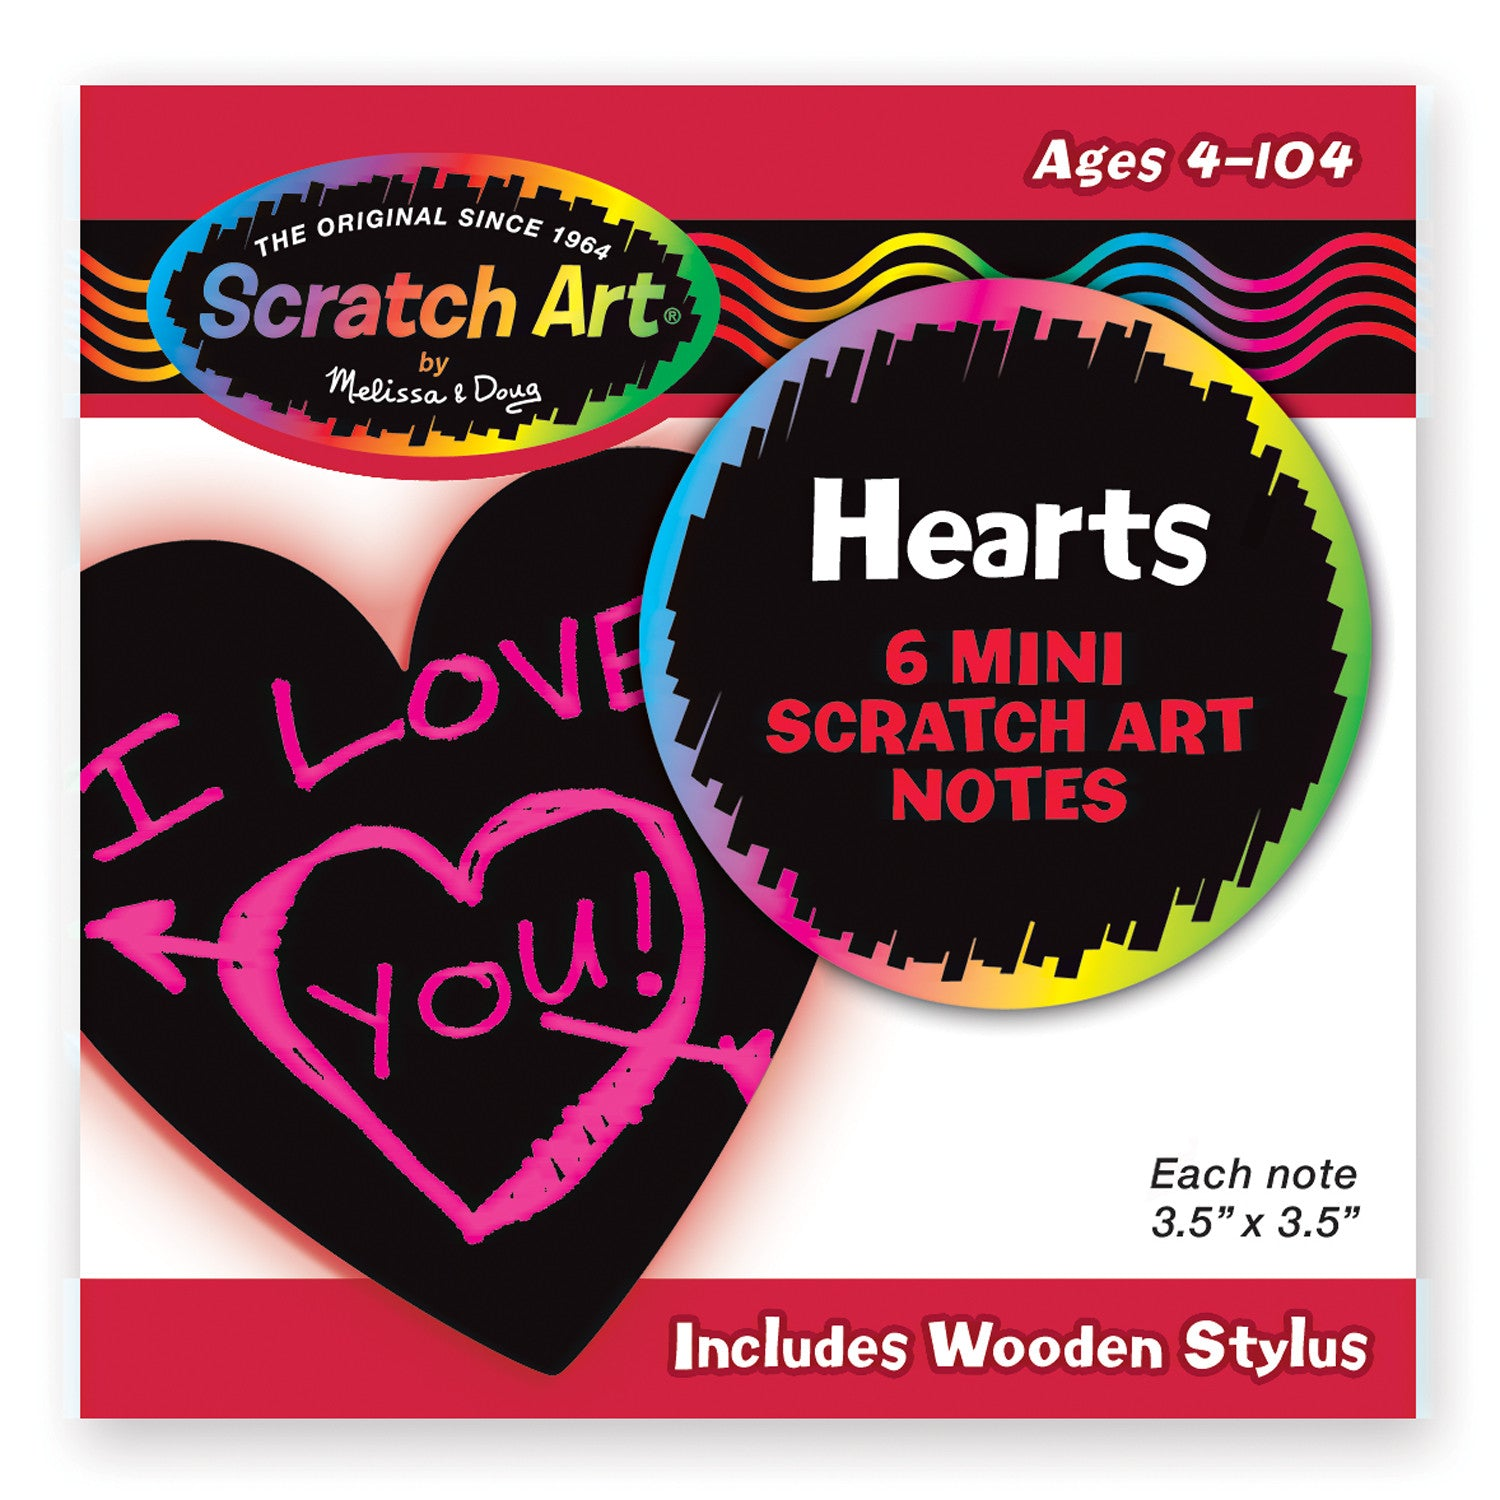 Melissa and Doug Heart-Shaped Mini Scratch Art Notes 5930